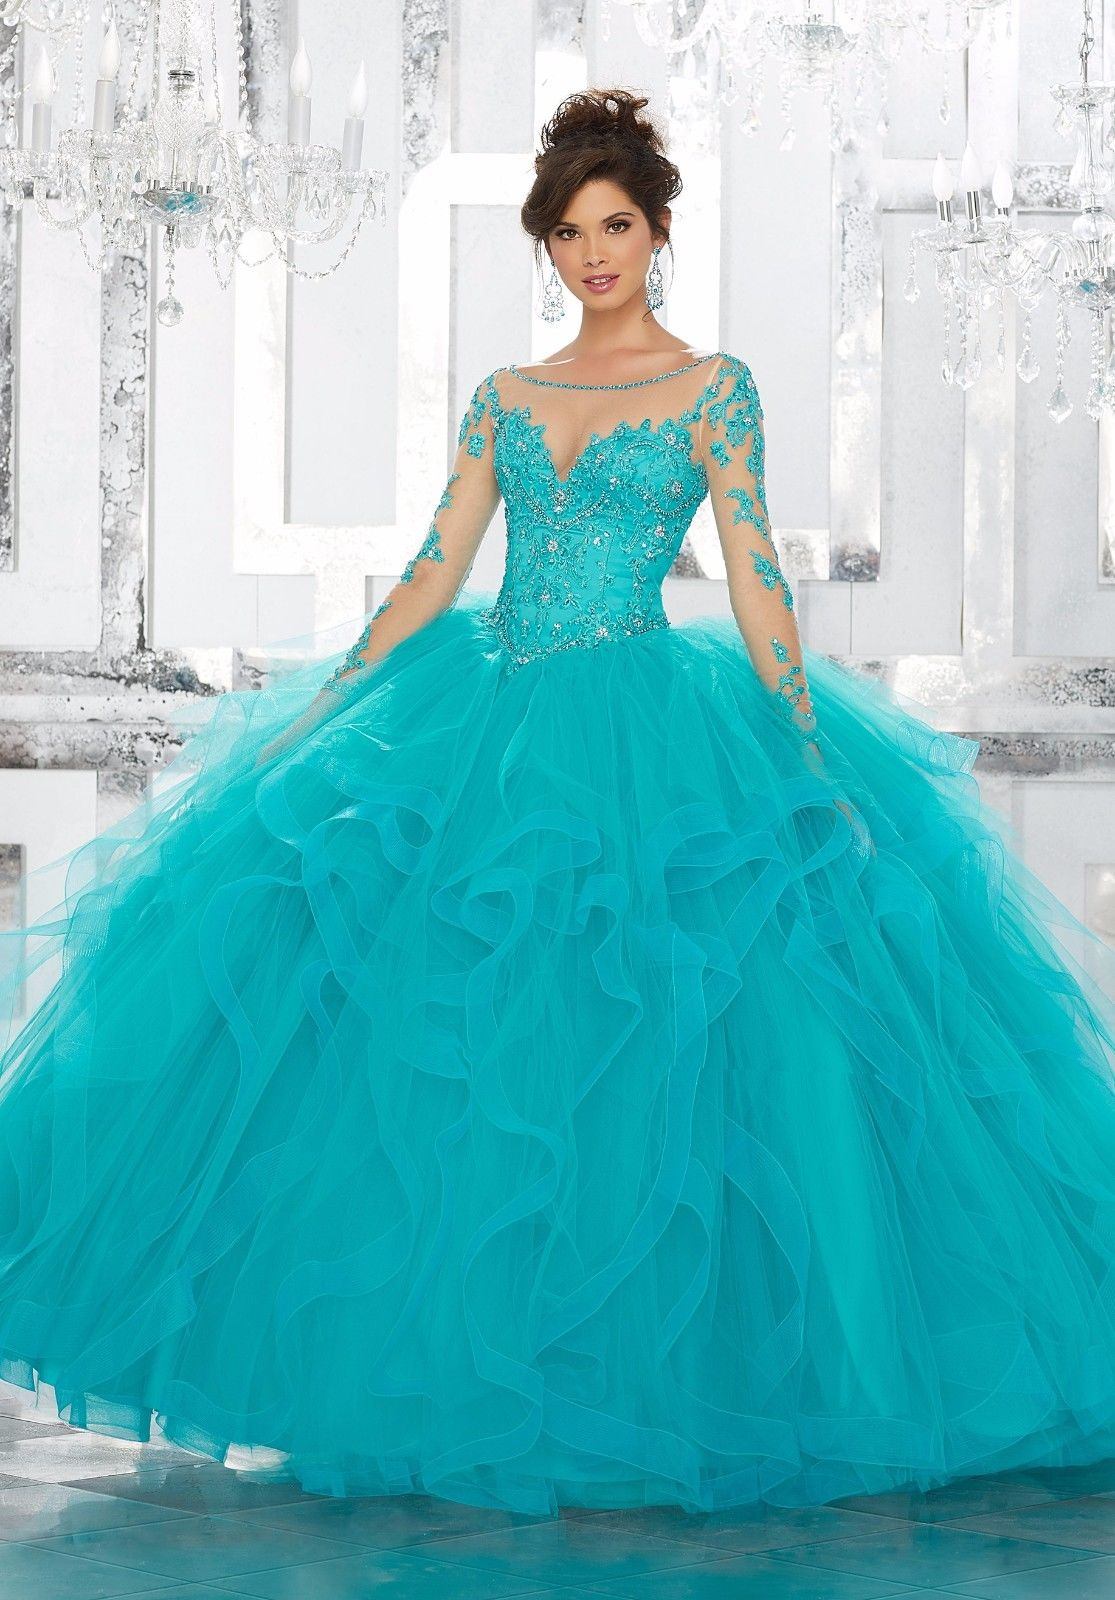 New Quinceanera Dress Party Evening Ball Formal Prom Pageant Wedding ...